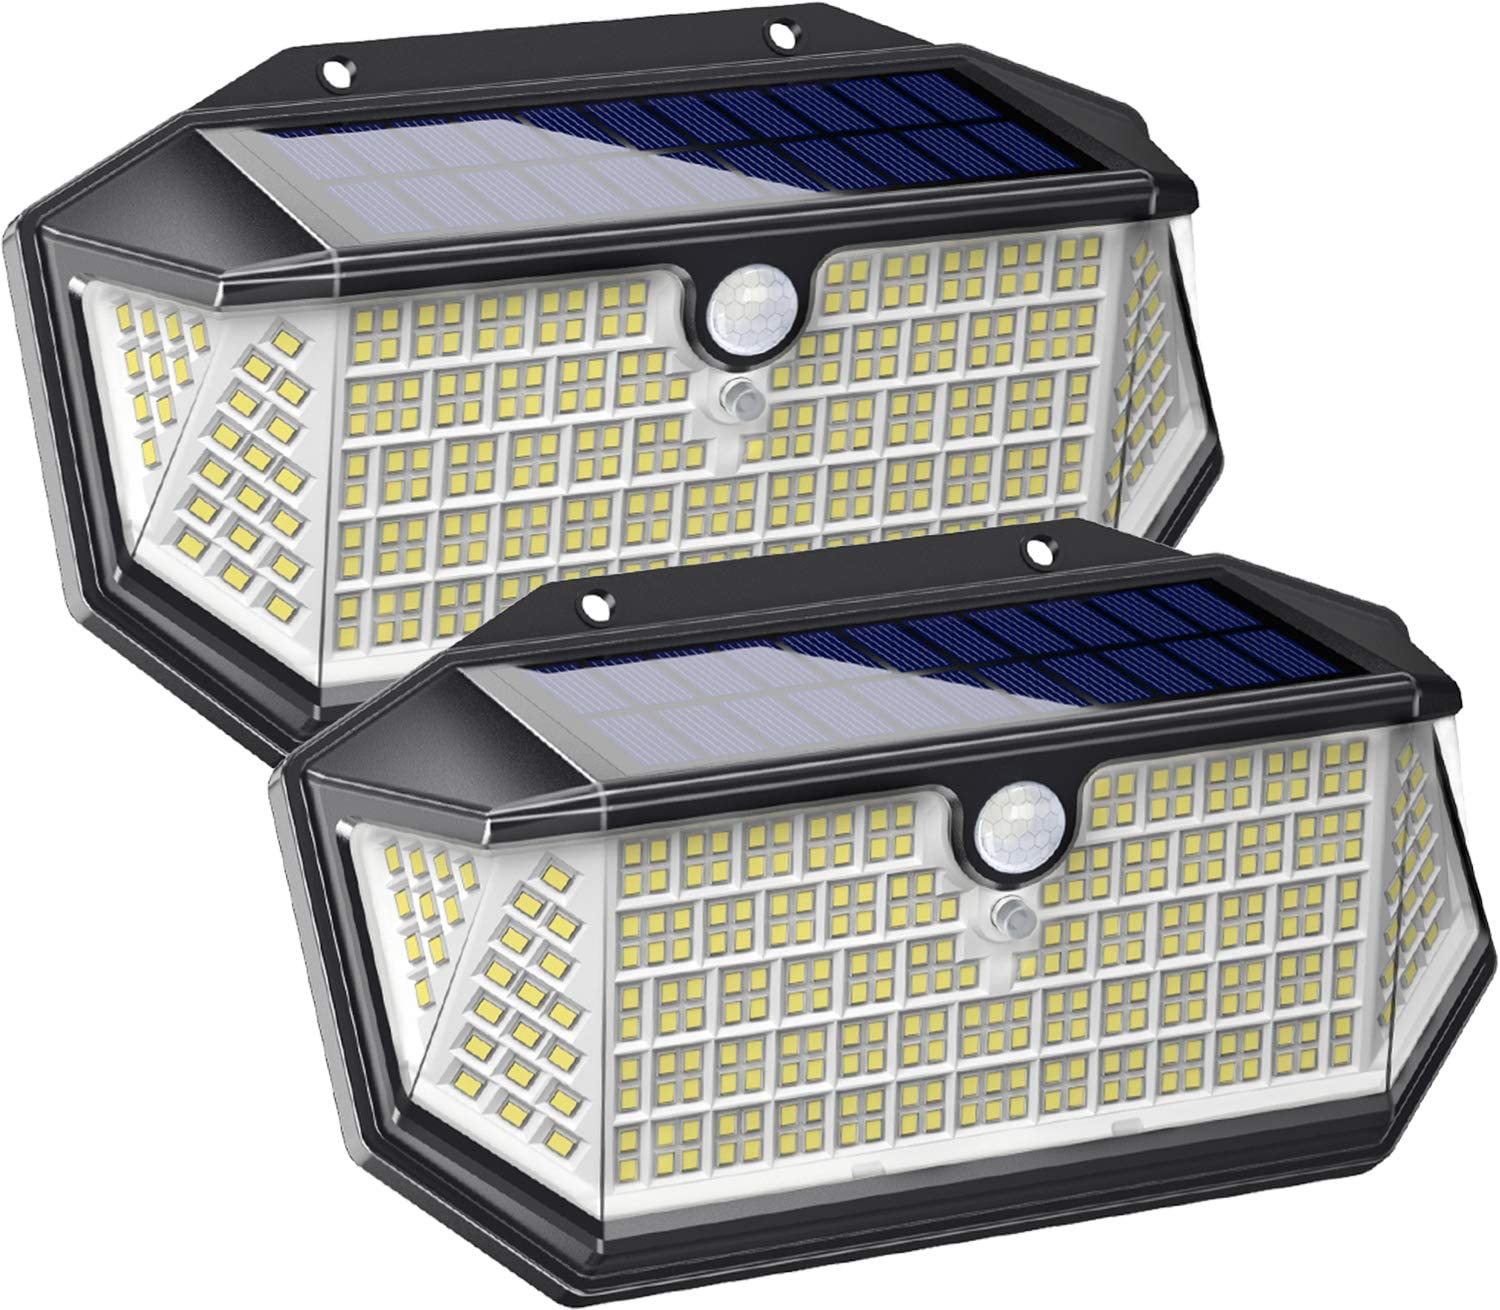 Solar Lights Outdoor 266 LED with Lights Reflector, IP65 Waterproof Solar Motion Sensor Security Lights, Wireless 3 Modes Wall Lights for Garden, Patio, Garage, Yard(2 Pack)